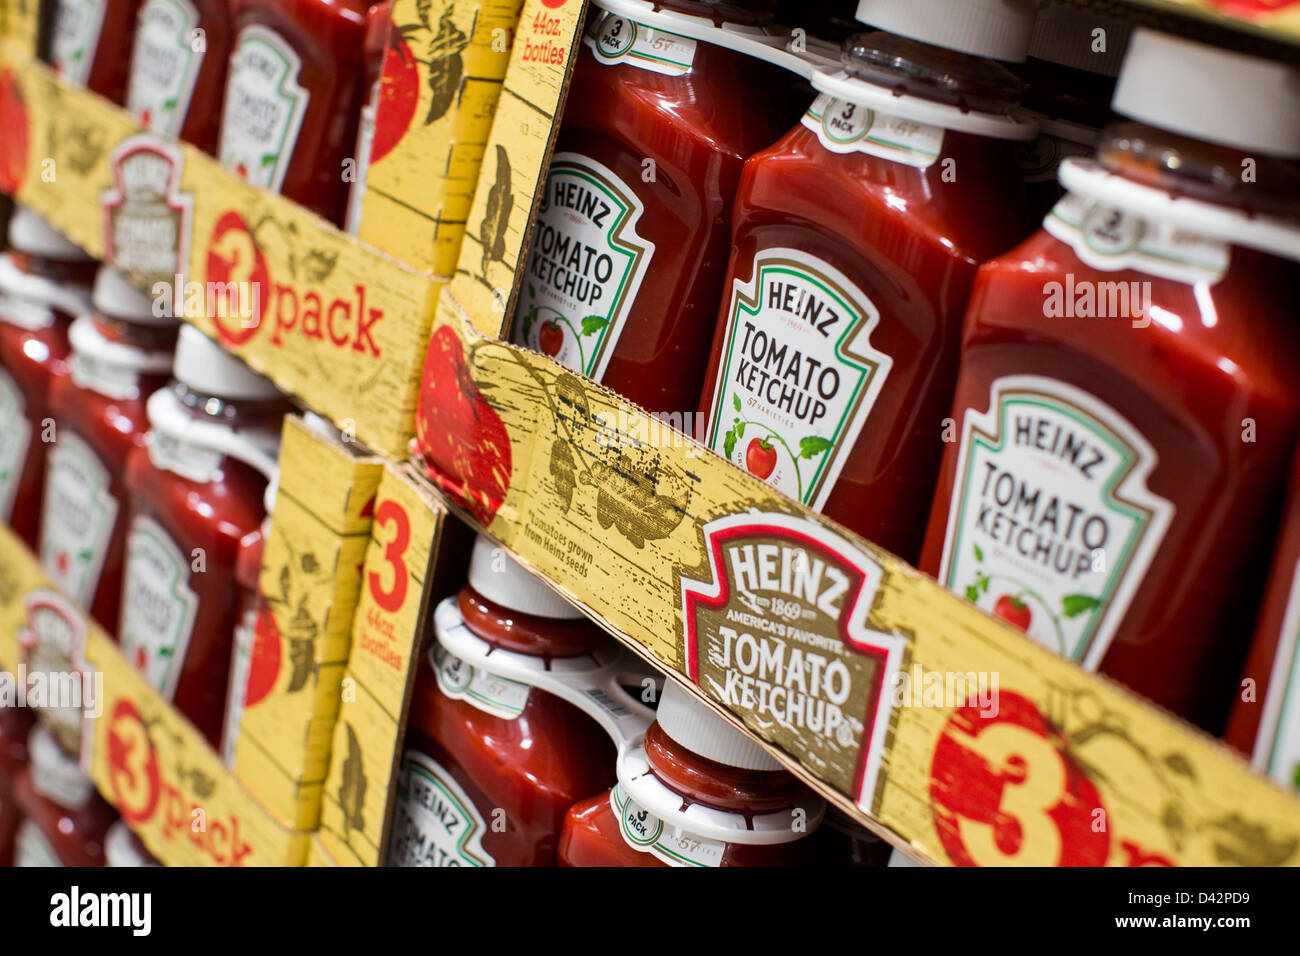 Heinz tomato ketchup on display at a costco wholesale warehouse club heinz tomato ketchup on display at a costco wholesale warehouse club stock photo 54151253 alamy thecheapjerseys Images